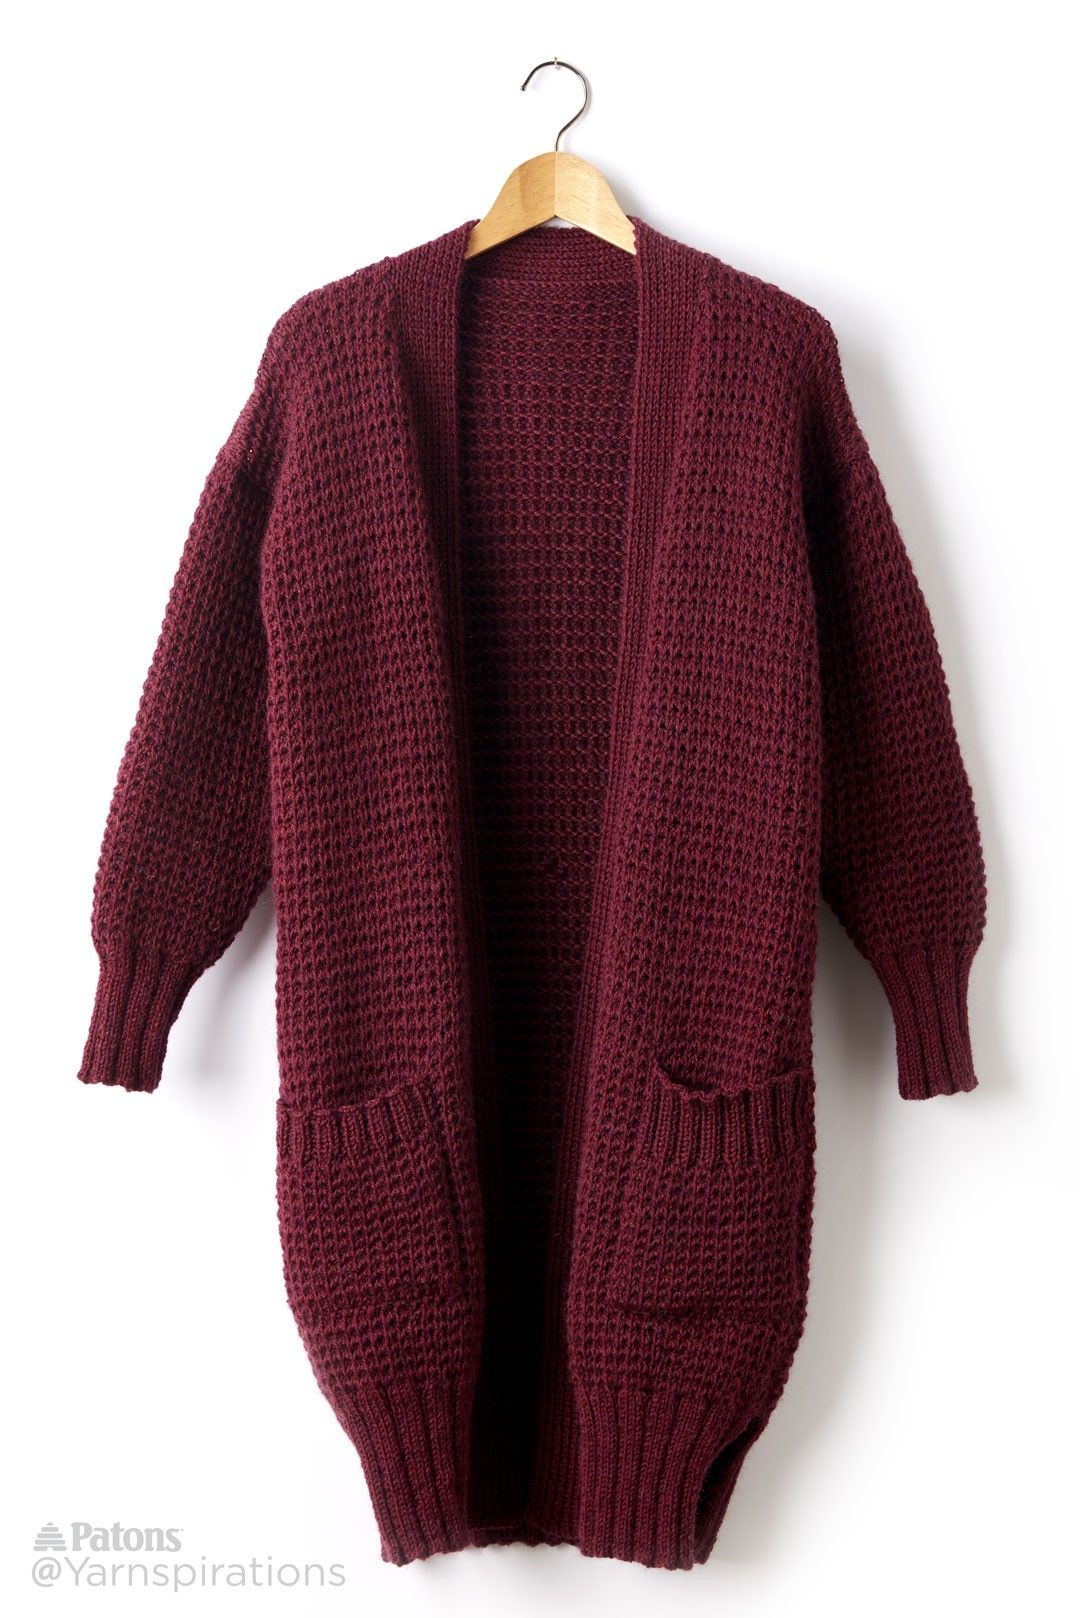 15 Knitted Cardigan Patterns That Are Perfect for Cold Season | Free ...